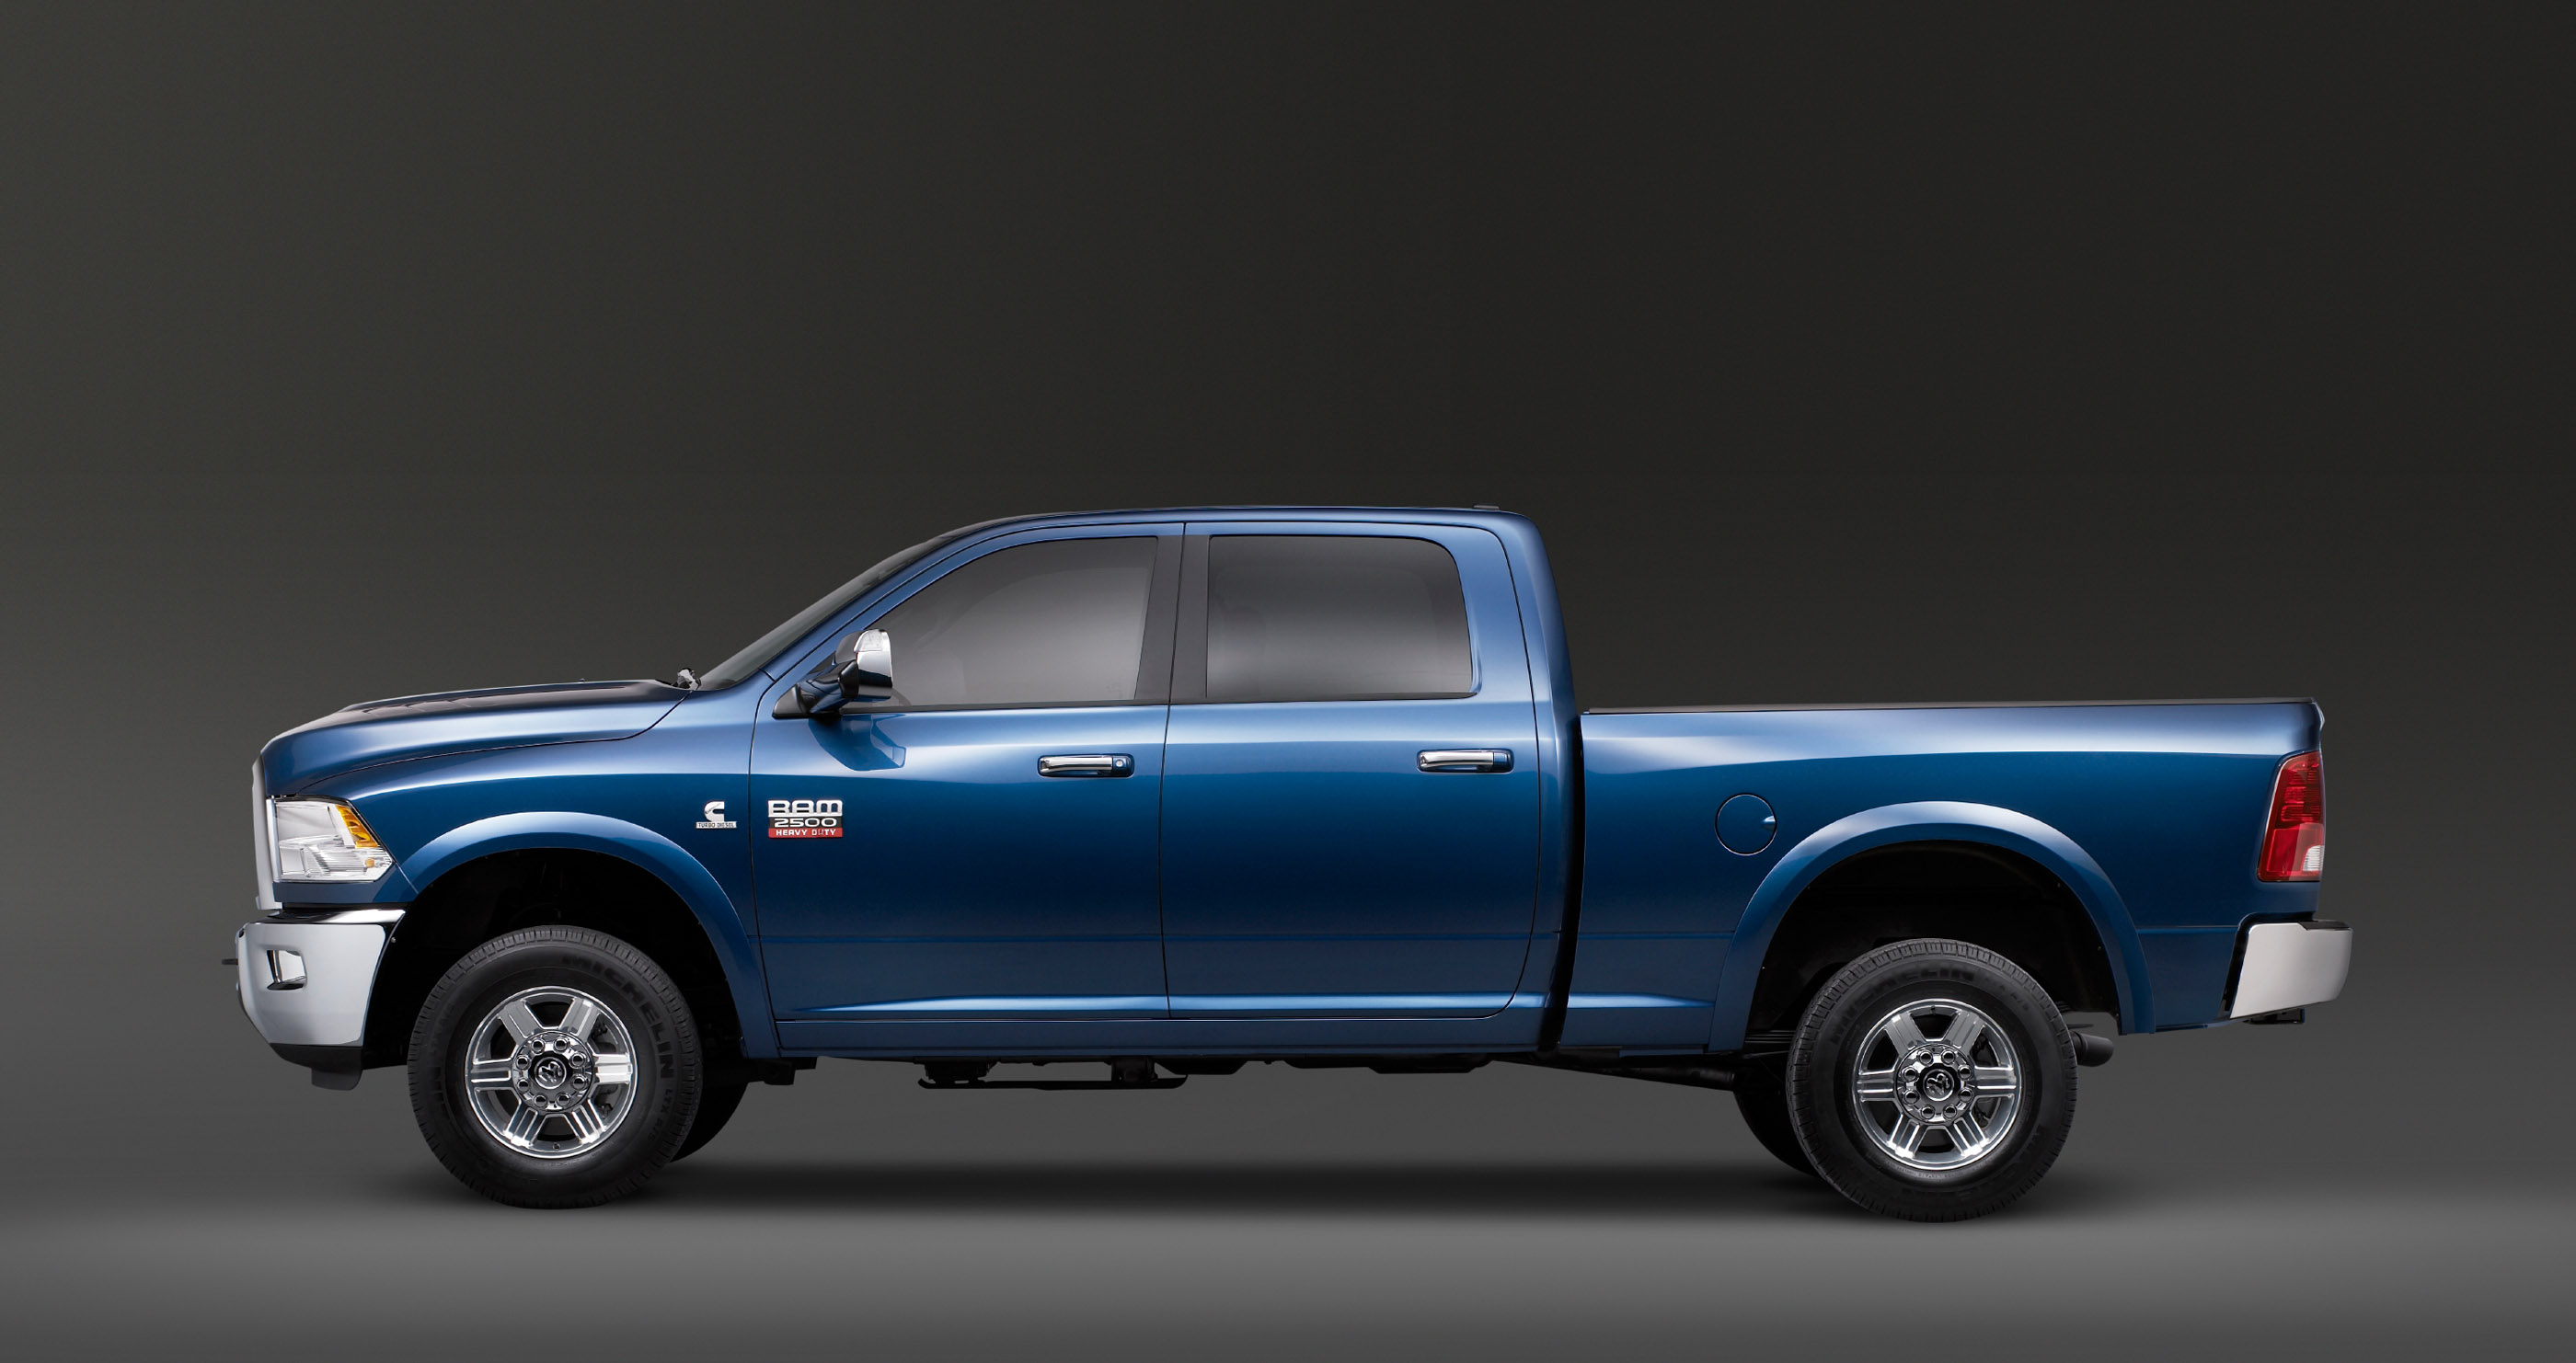 2010 Dodge Ram 2500 And 3500 Will Be The Ultimate Heavy